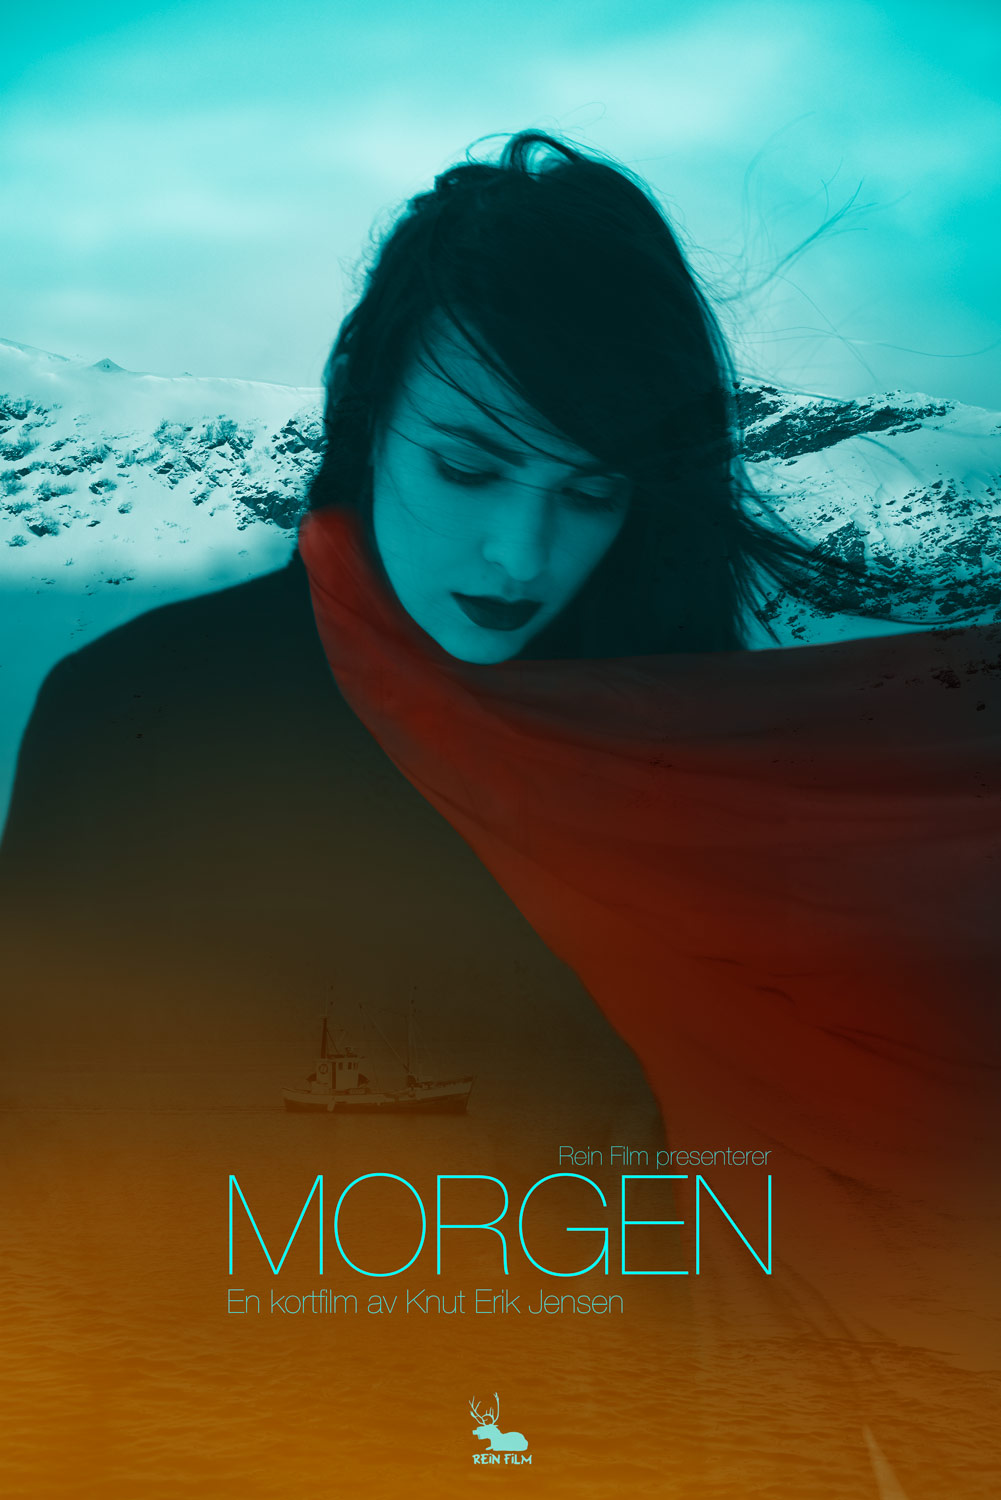 Main poster for short film Morgen/Morning by Knut Erik Jensen and Rein  Film.